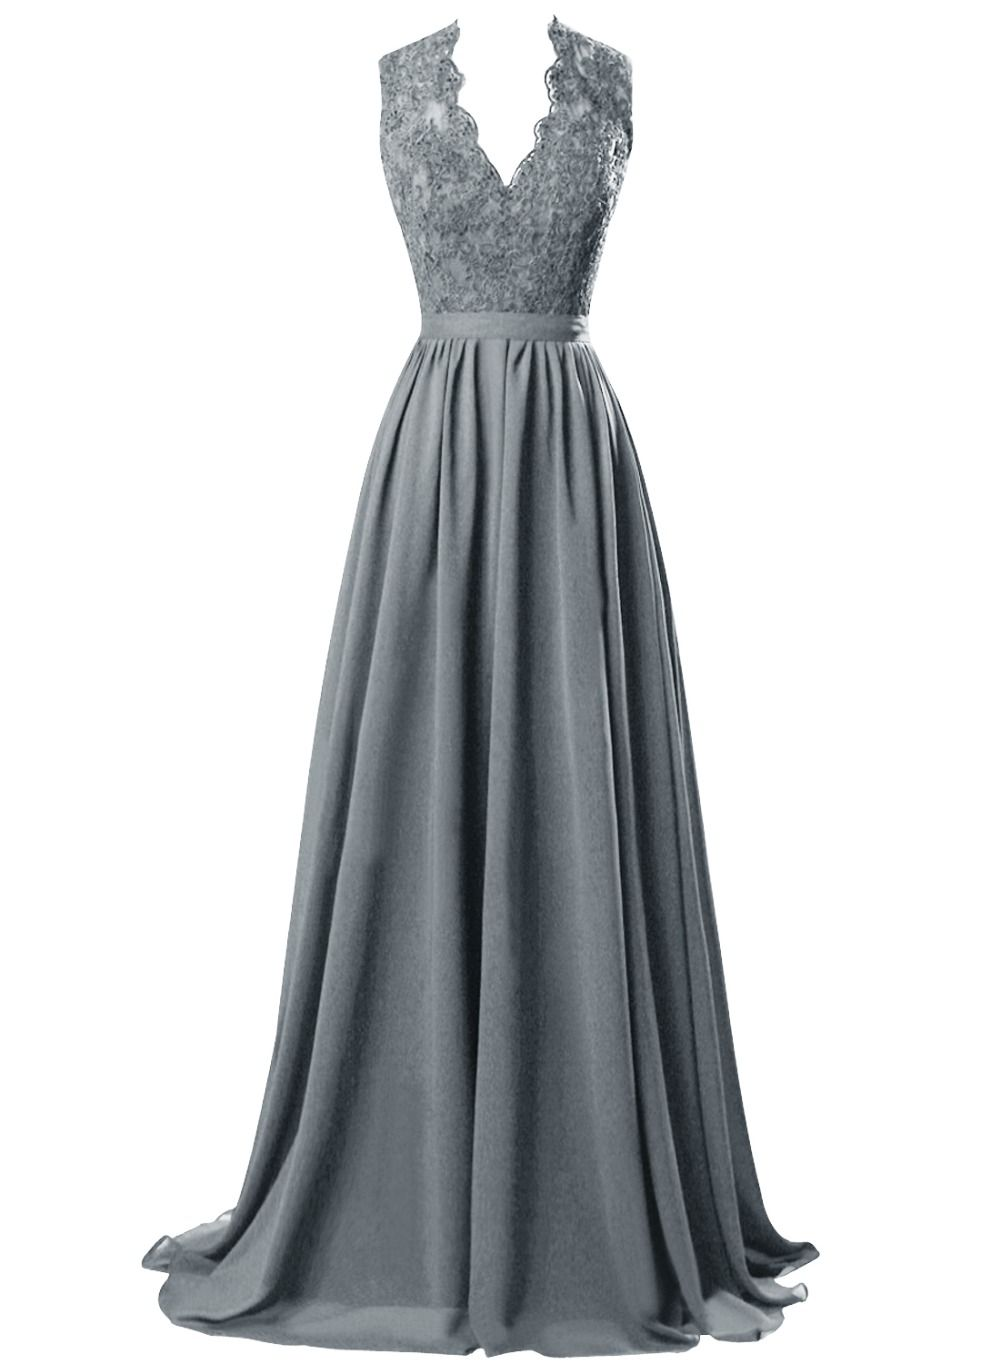 Bridesmaid Dresses From China to Order